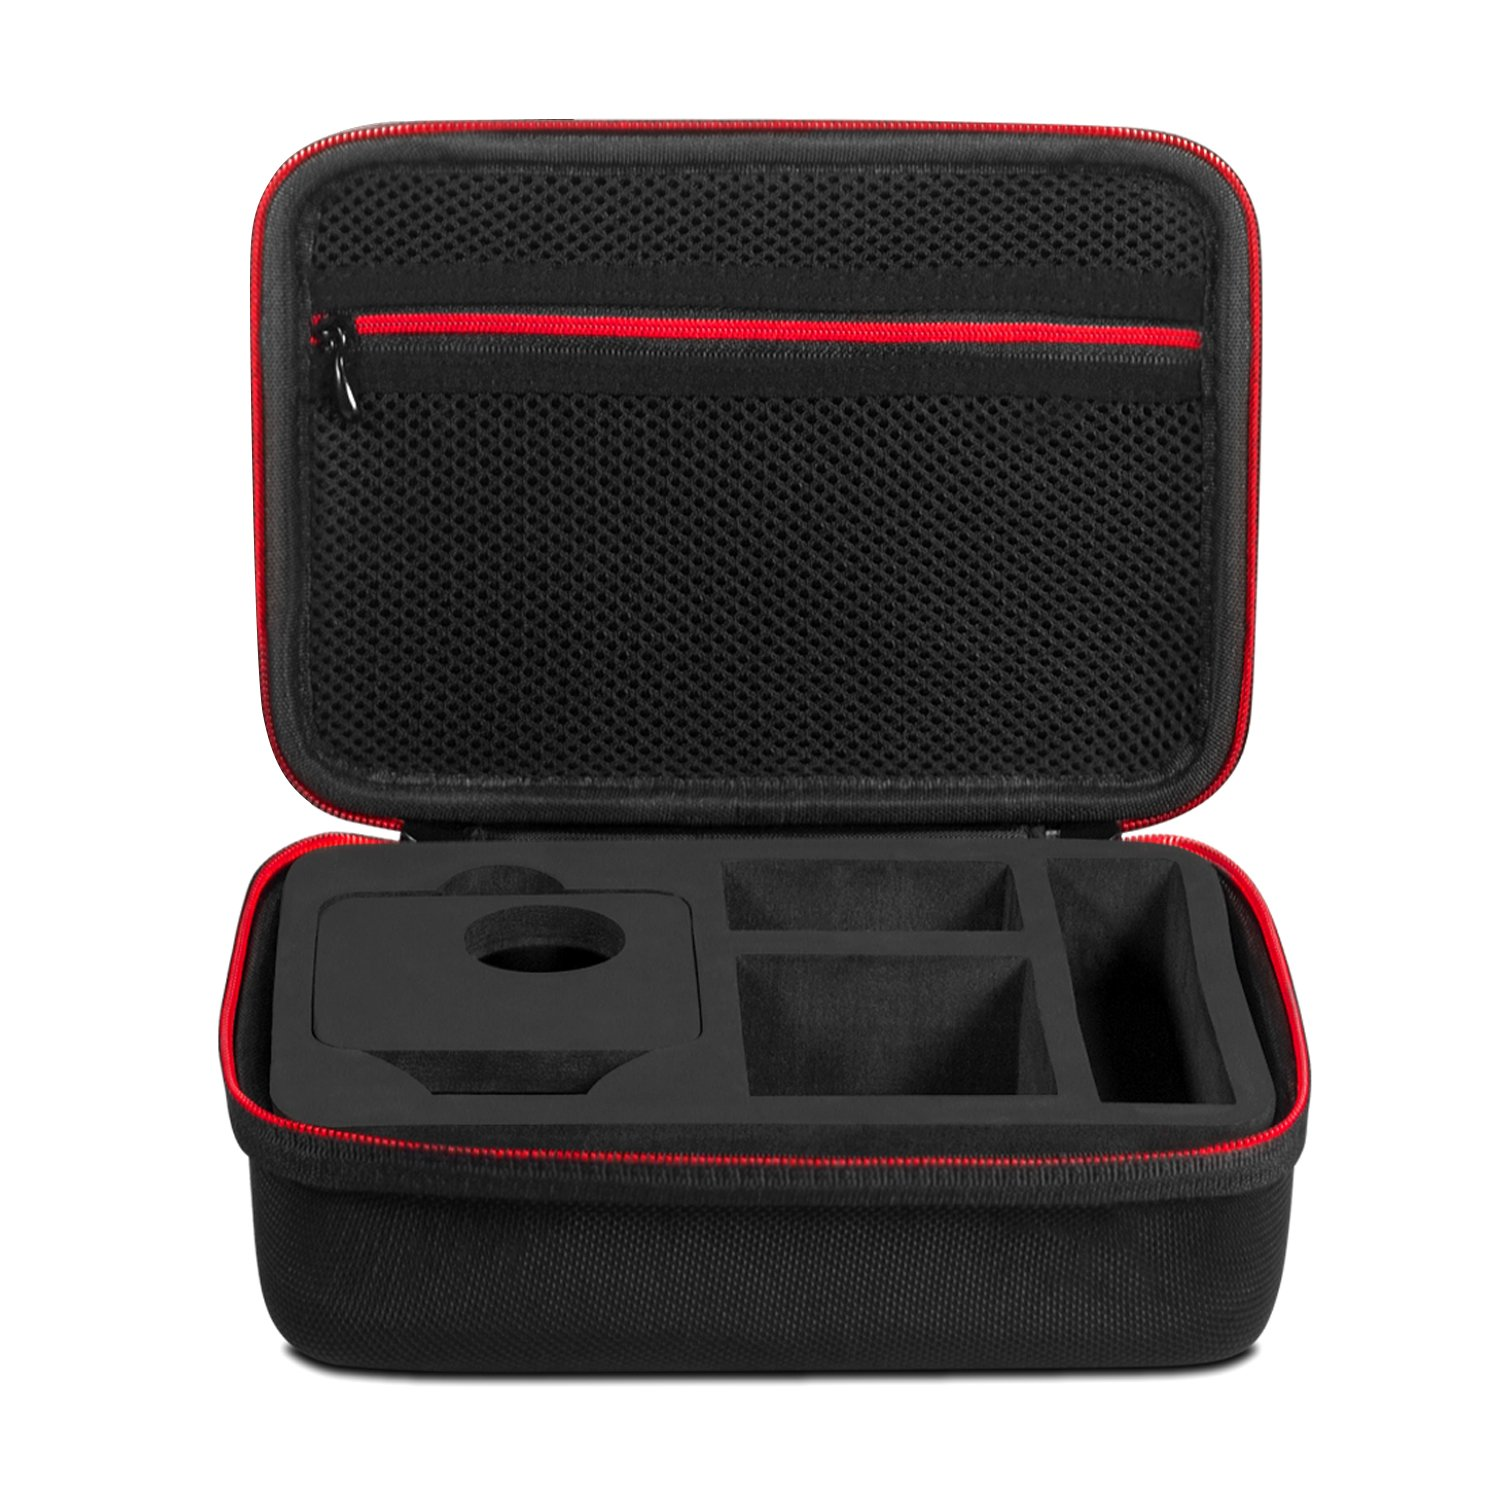 iTrunk Portable Carrying Case for GoPro Fusion, Protective Waterproof and Shockproof Case for GoPro Fusion Camera